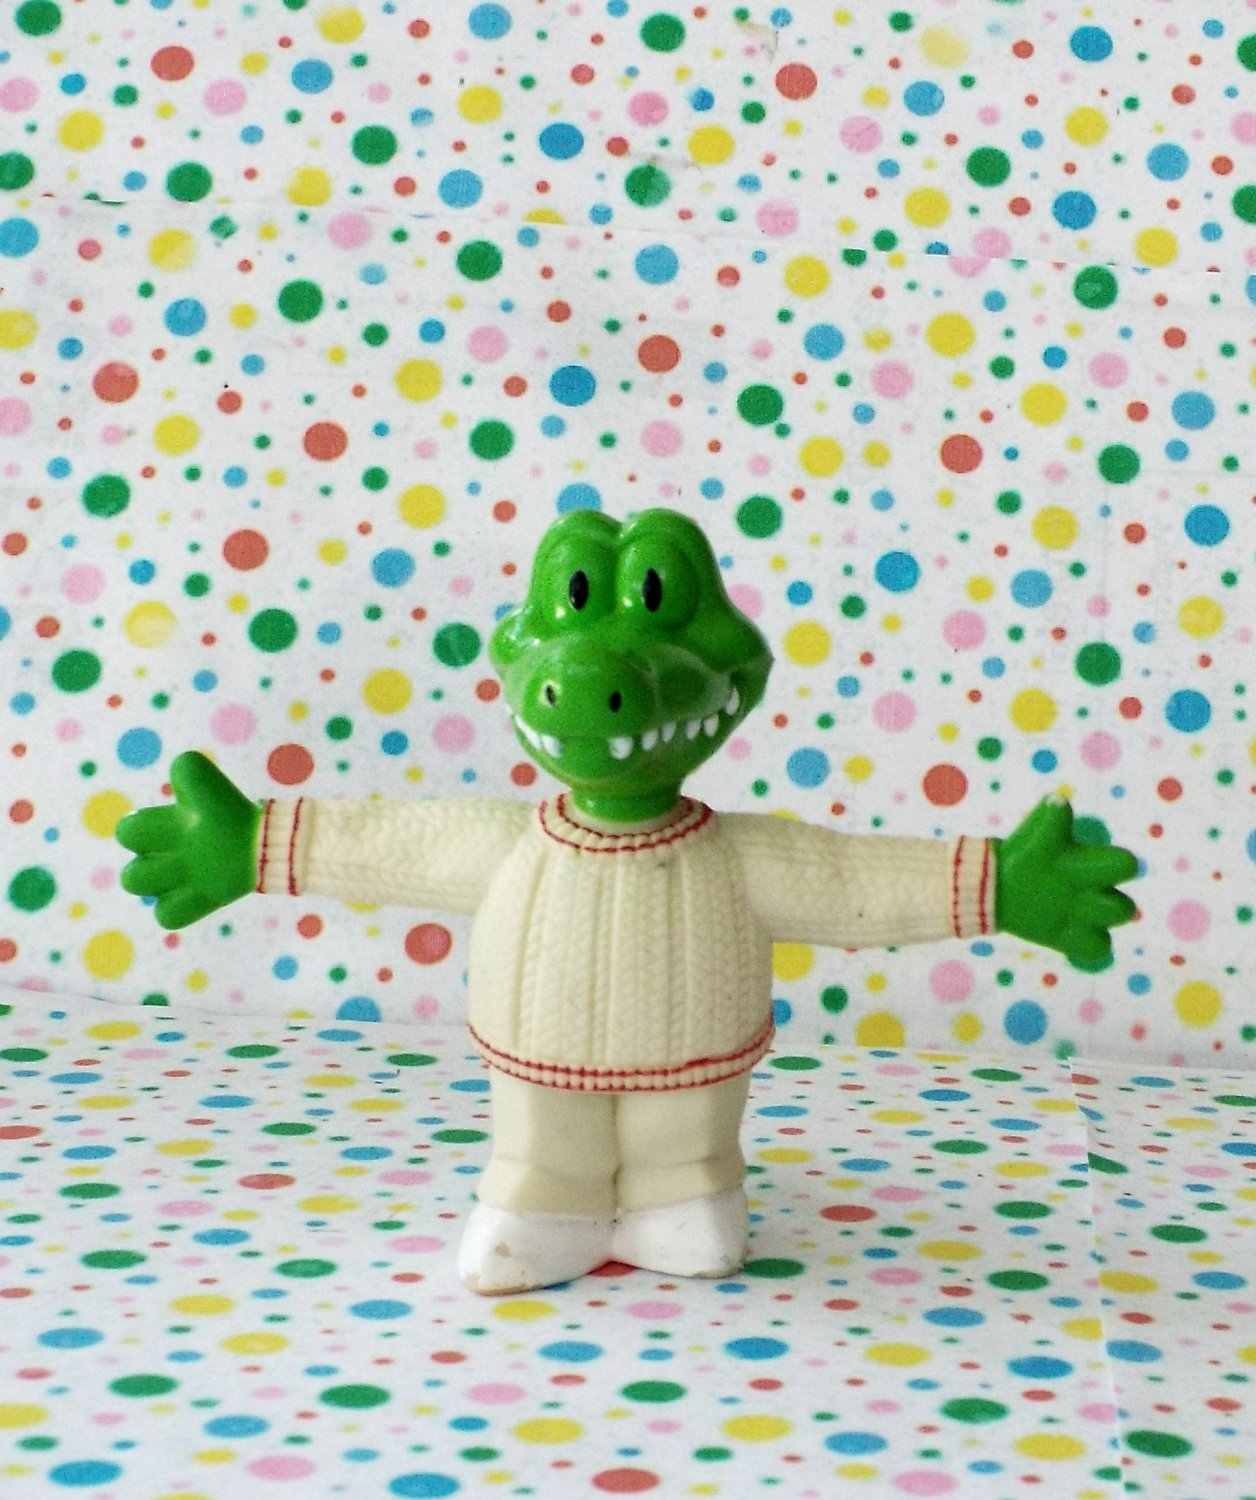 Koala Brothers Archie Crocodile Figure